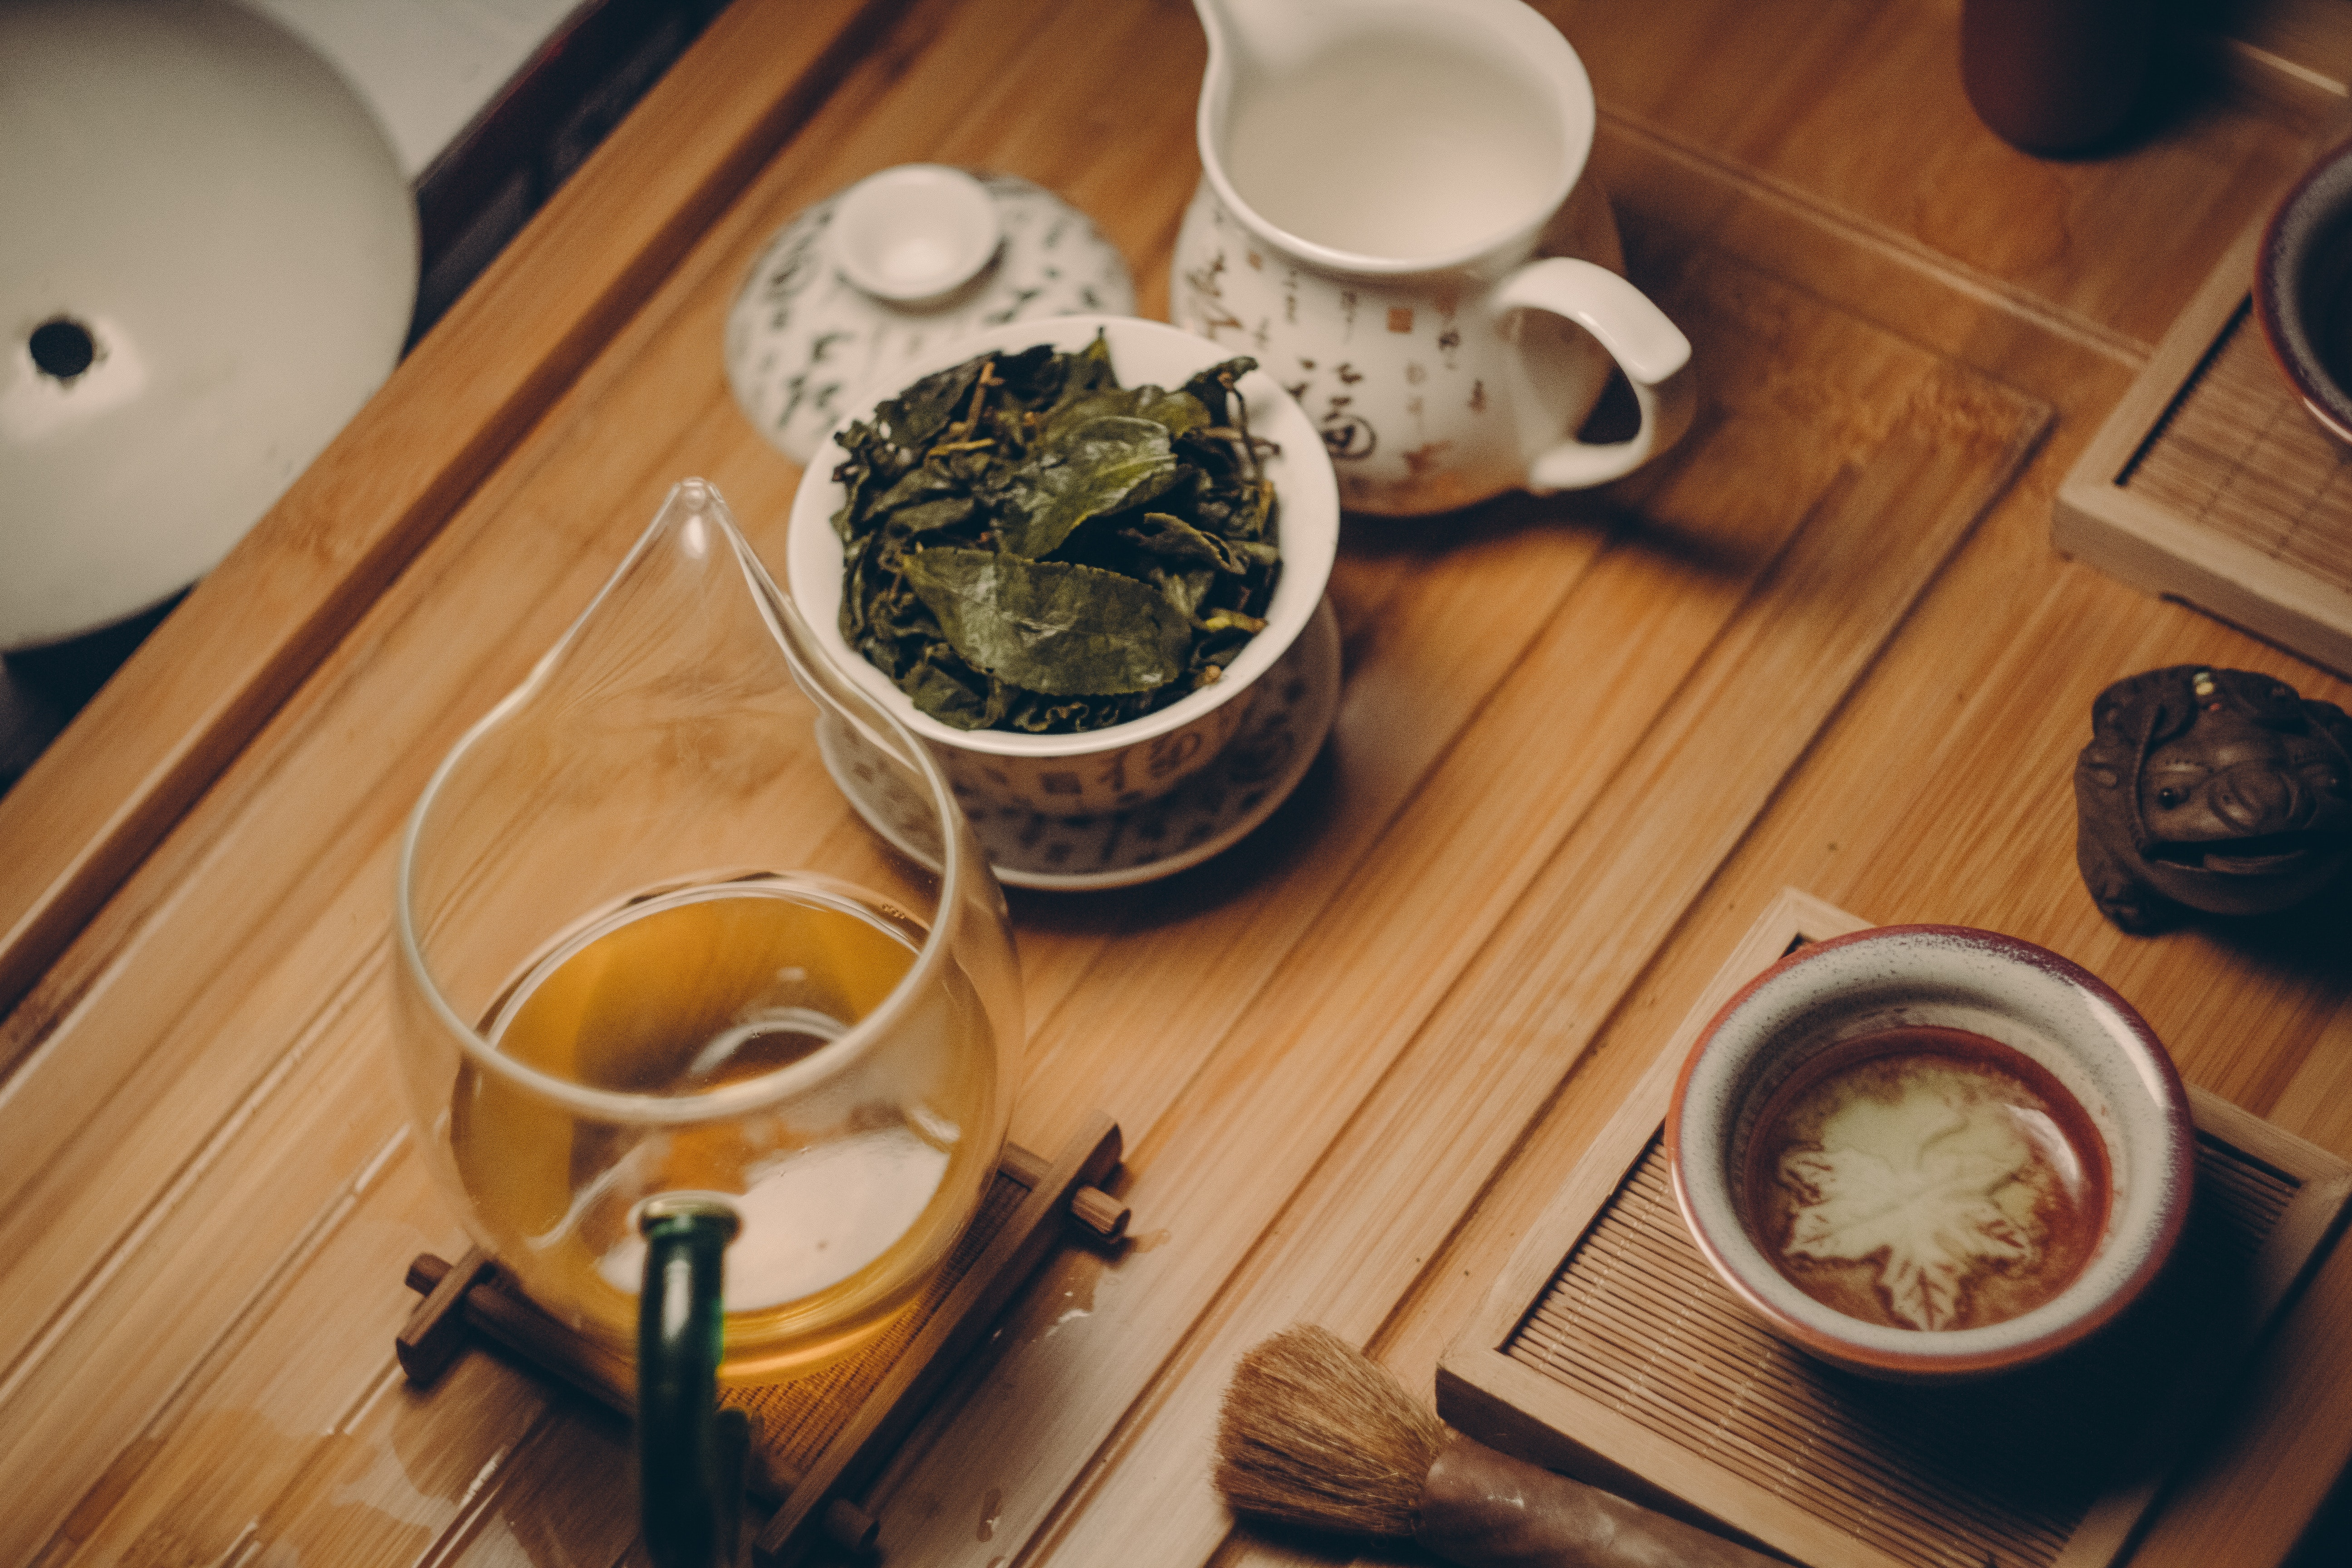 White ceramic teapot beside cup with leaves photo